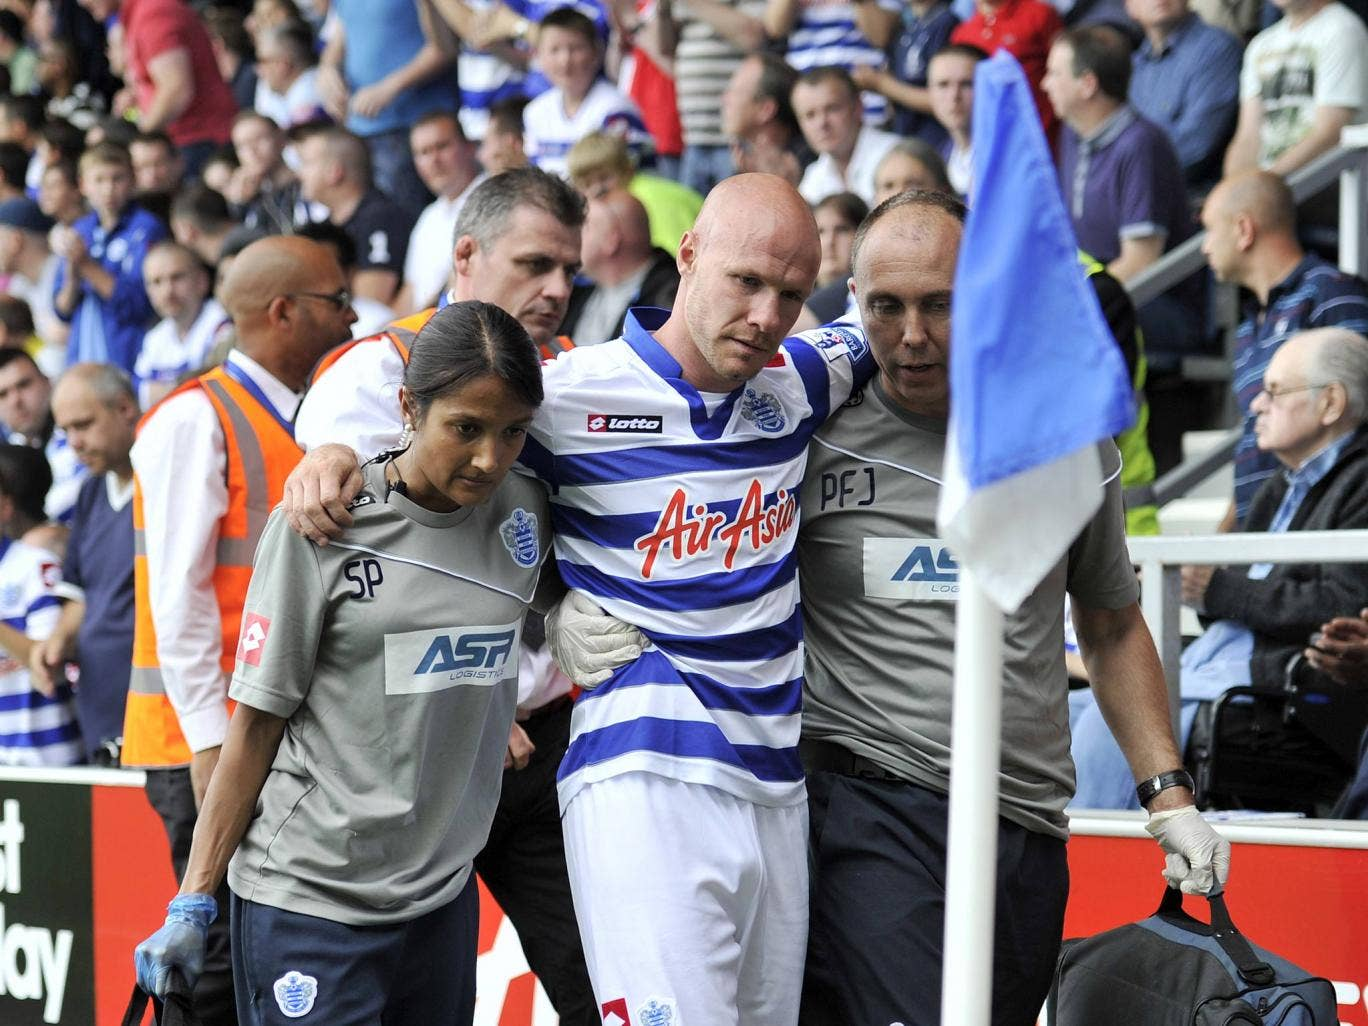 Andy Johnson pictured after sustaining an injury in September 2012